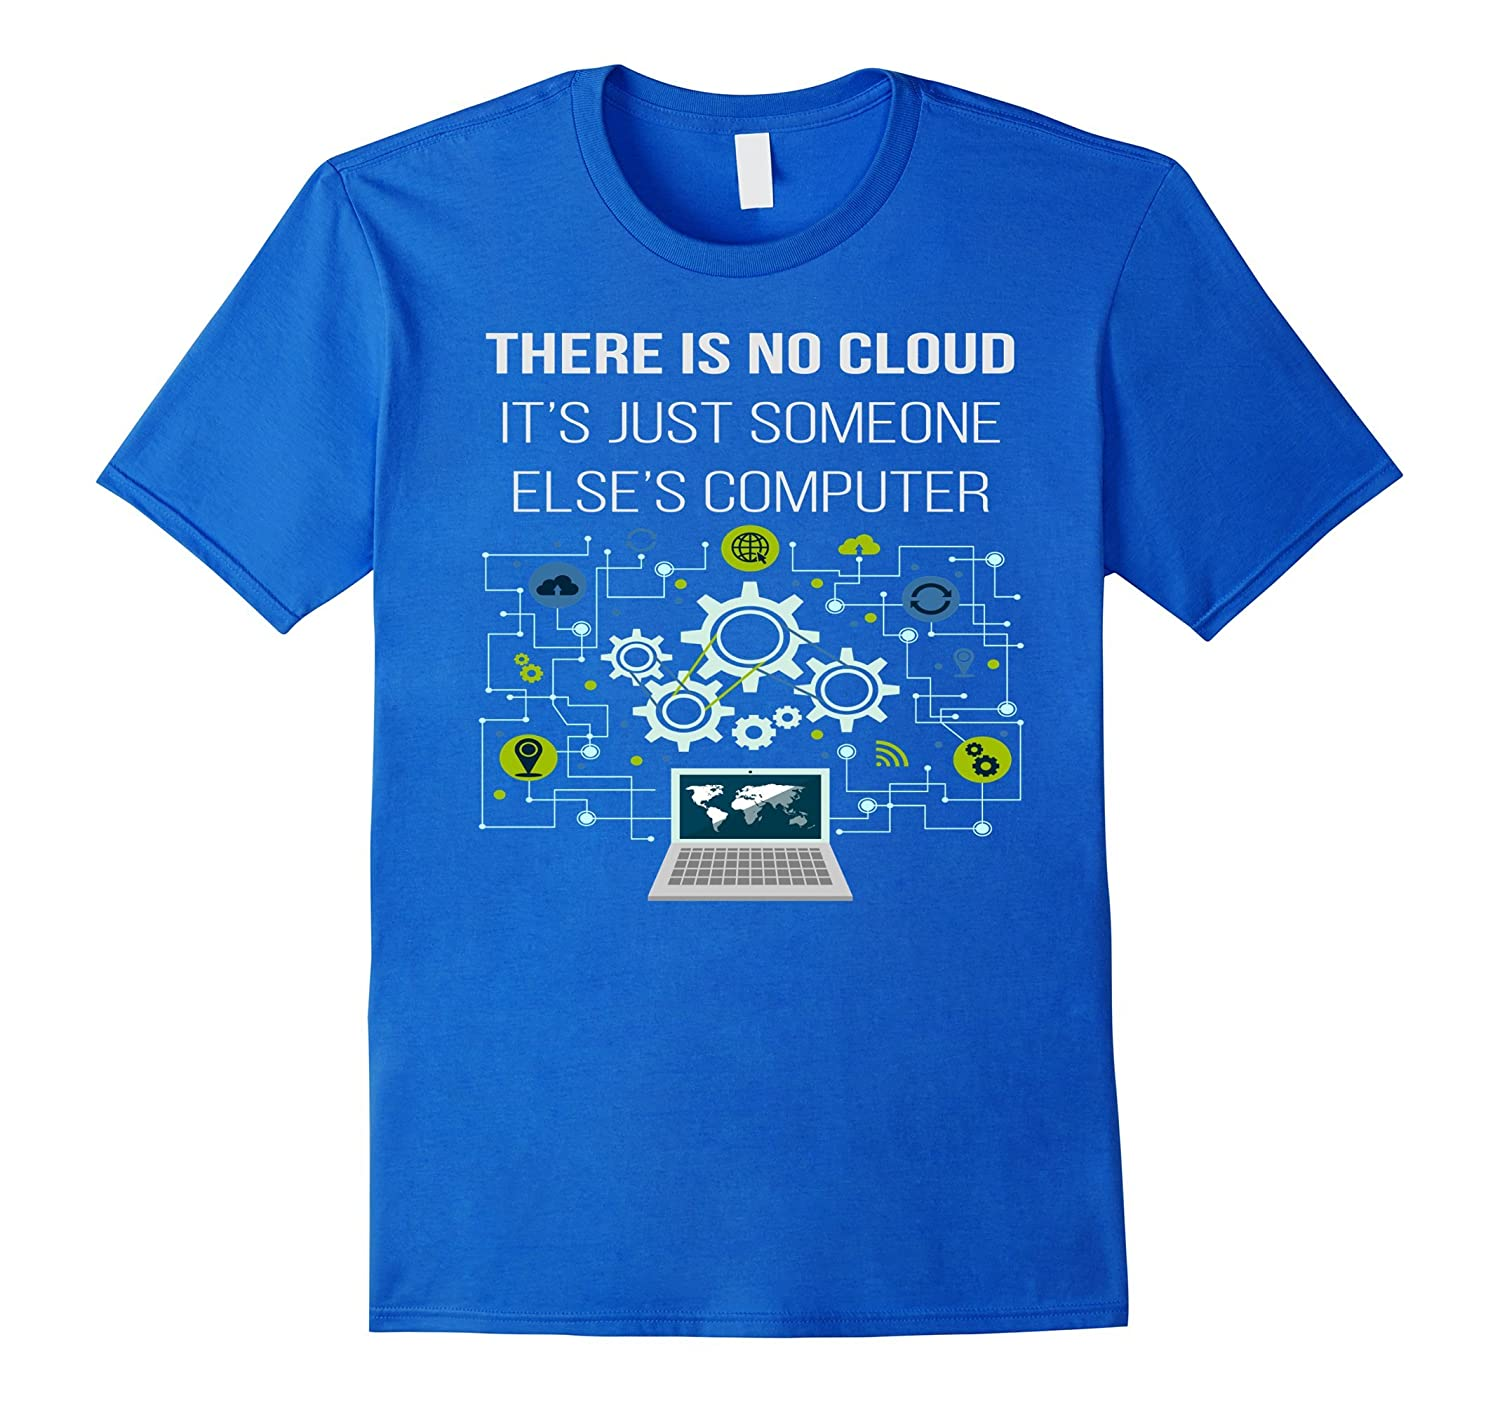 a2392d6b91 THERE IS NO CLOUD Shirt Funny IT Computer Geek Gift T-Shirt-ANZ ...